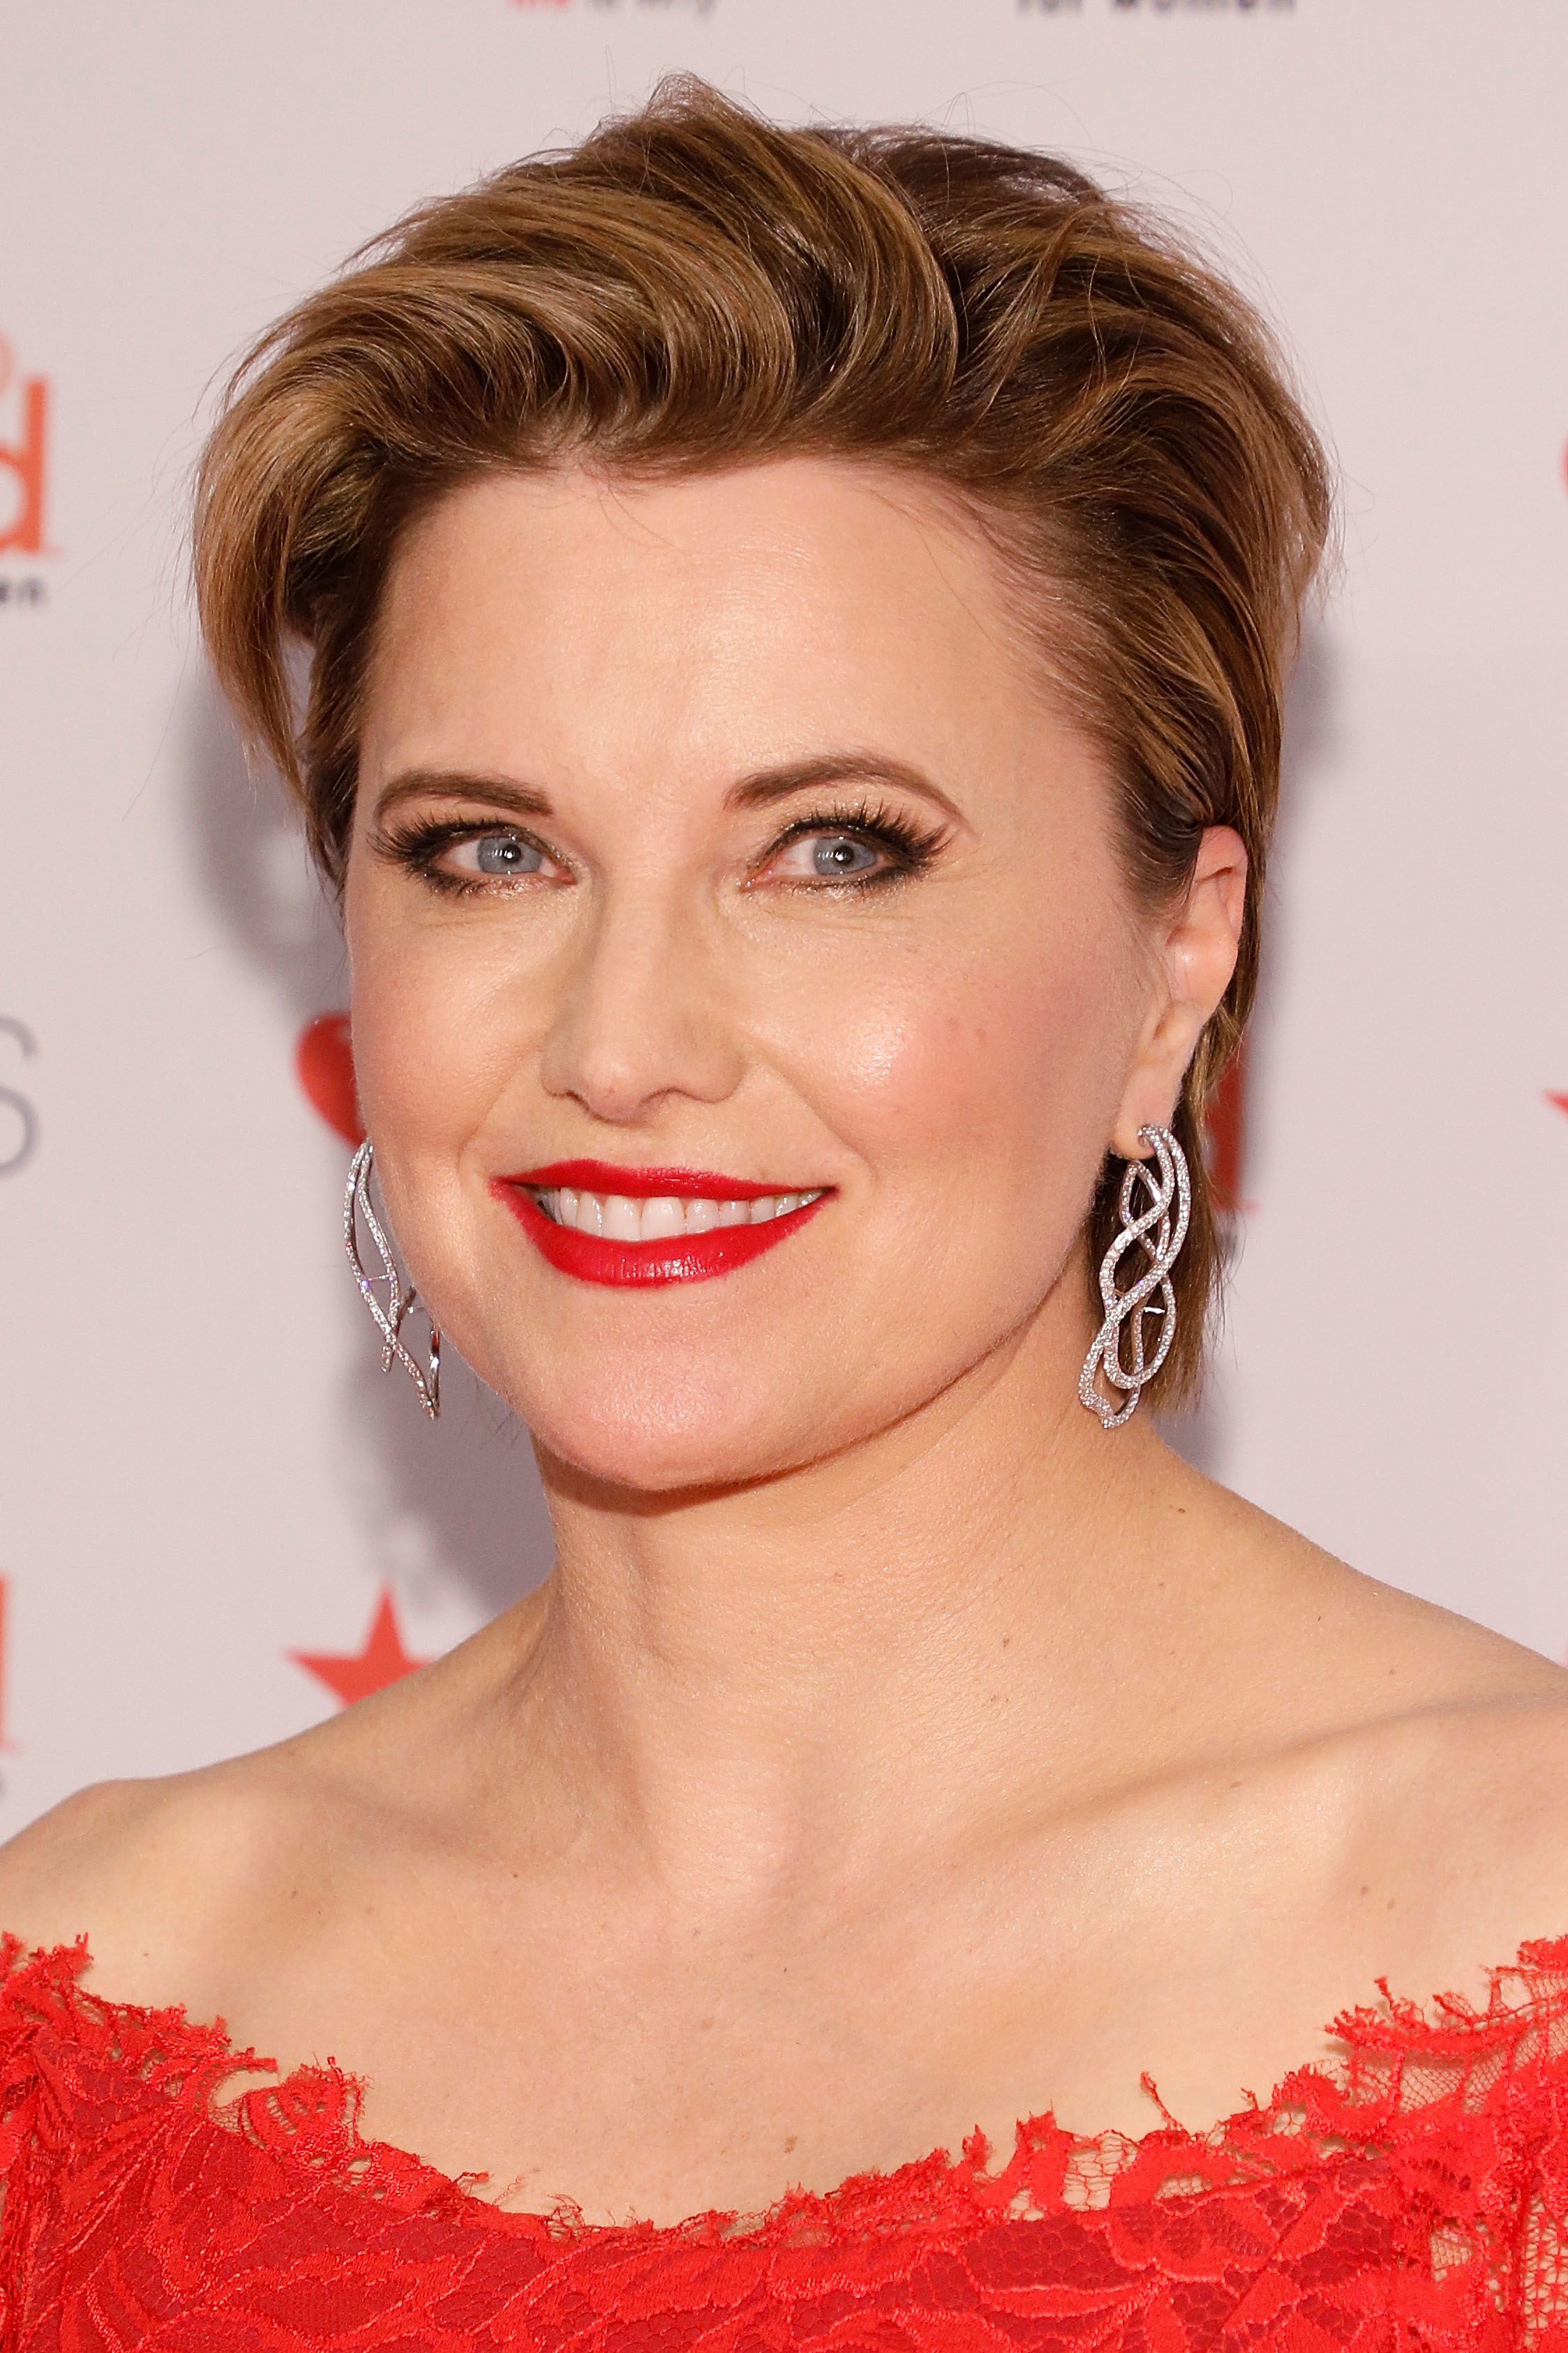 Lucy Lawless in a red dress and red lipstick at a premiere event